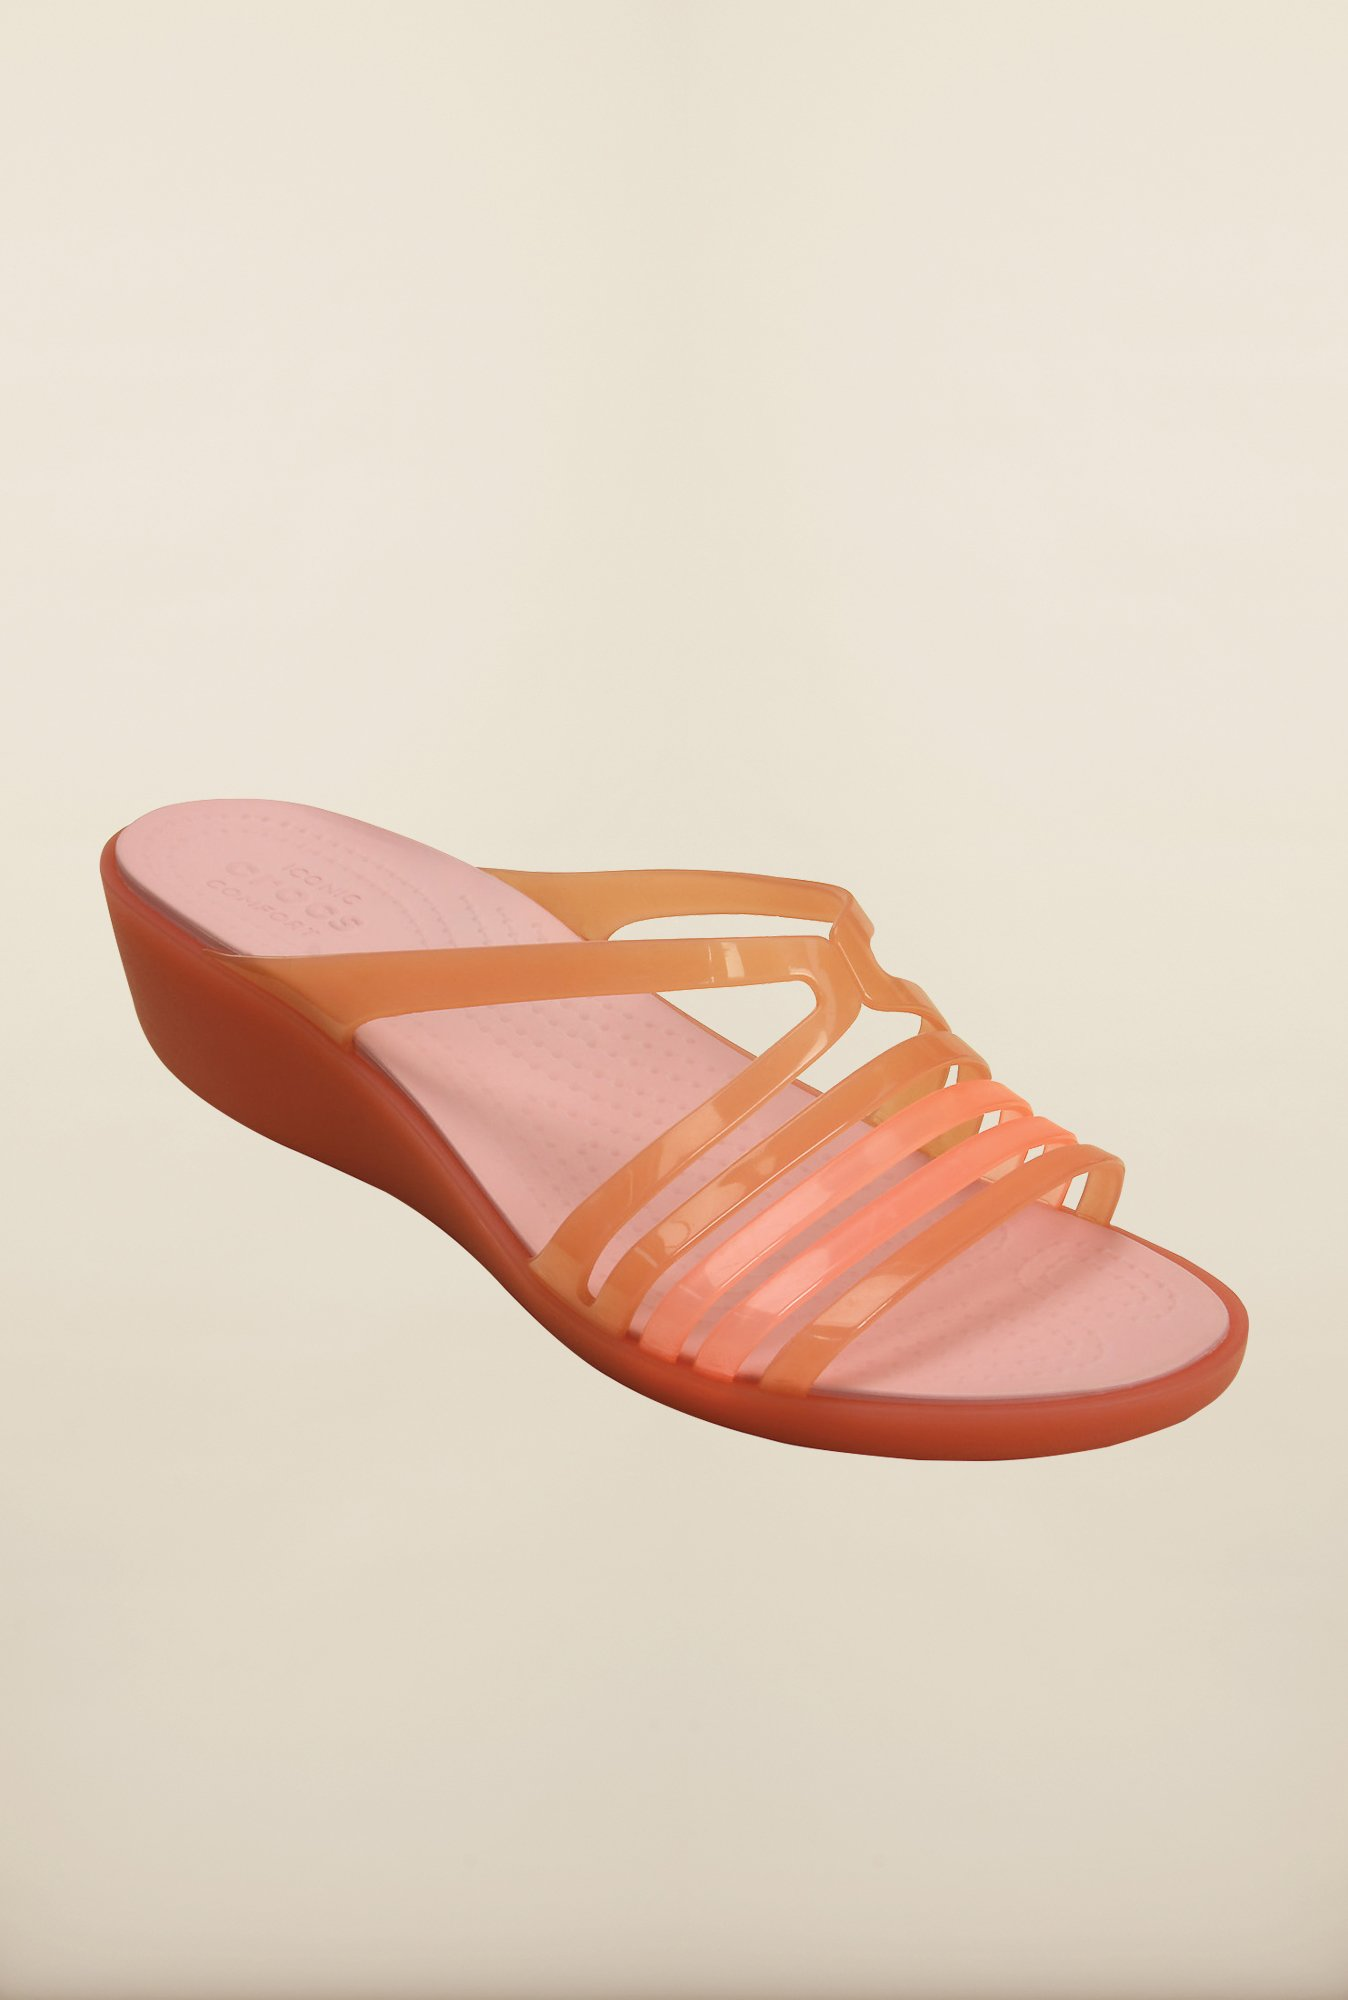 Crocs Isabella Mini Coral Wedges